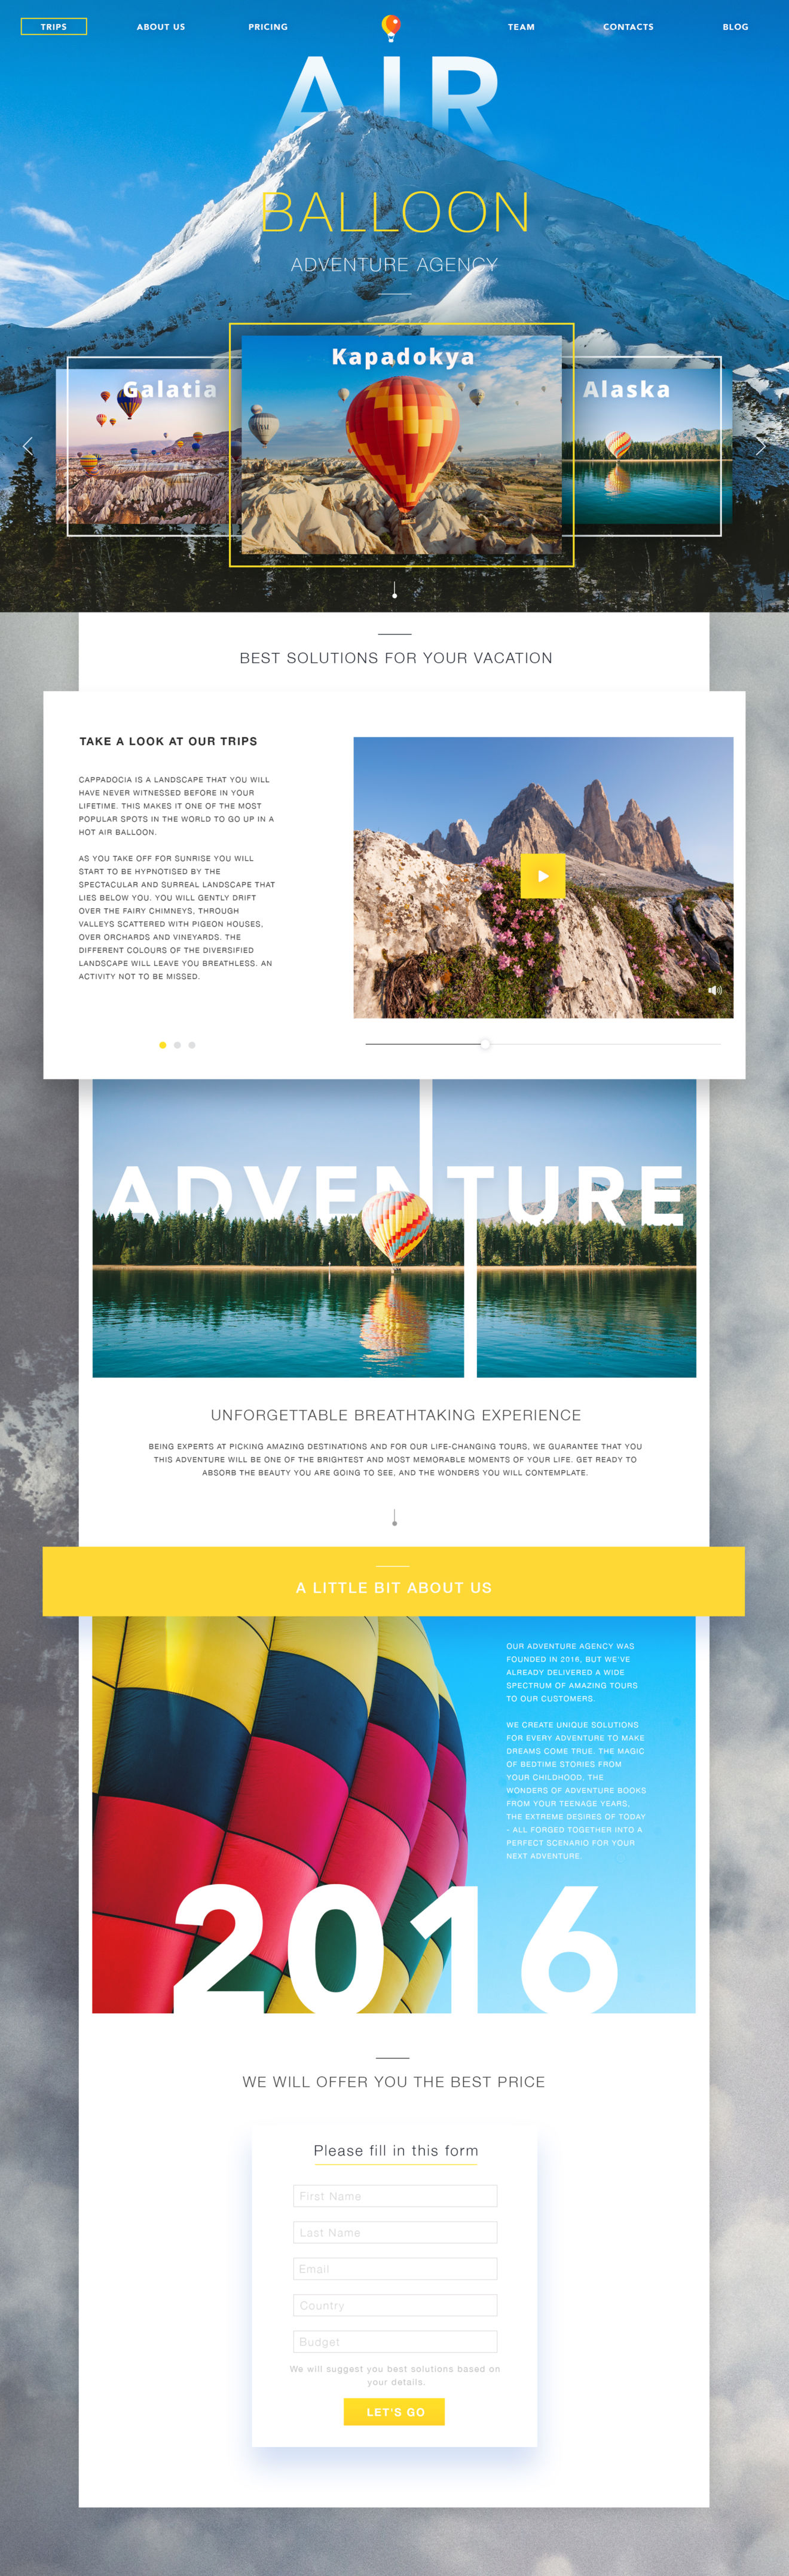 adventure_agency_website_tubikstudio